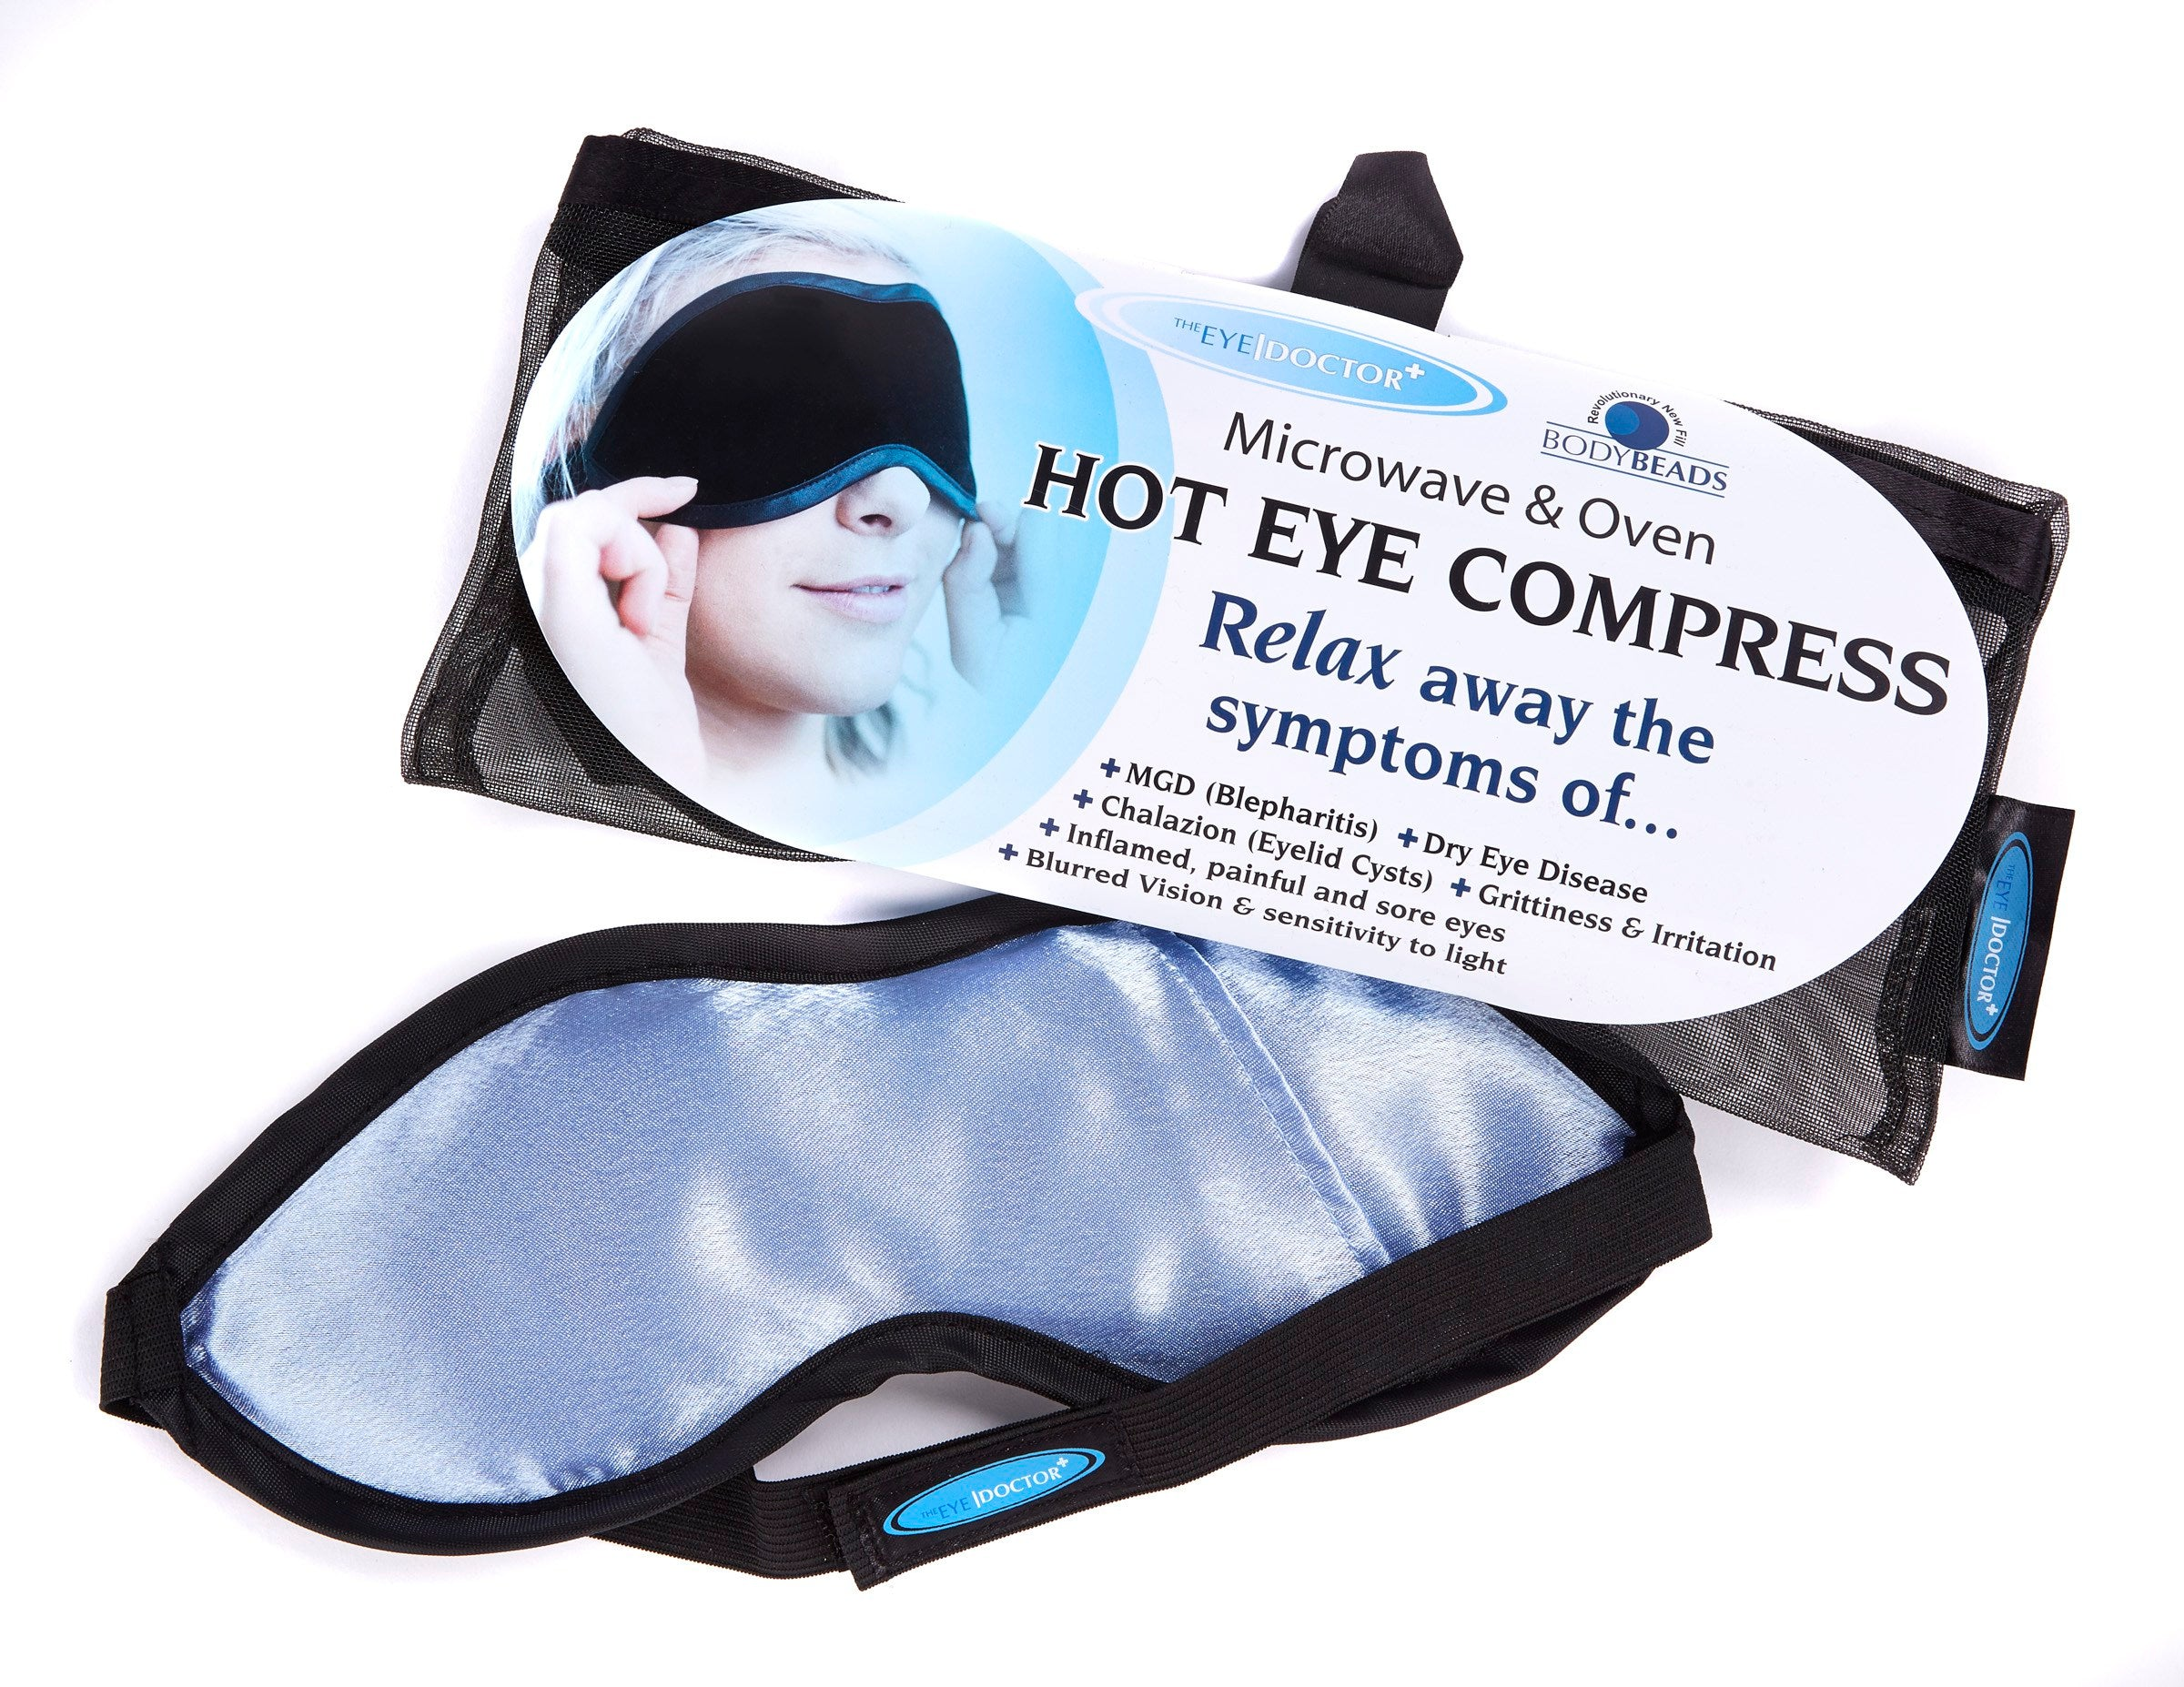 The Eye Doctor Premium® Hot Eye Compress